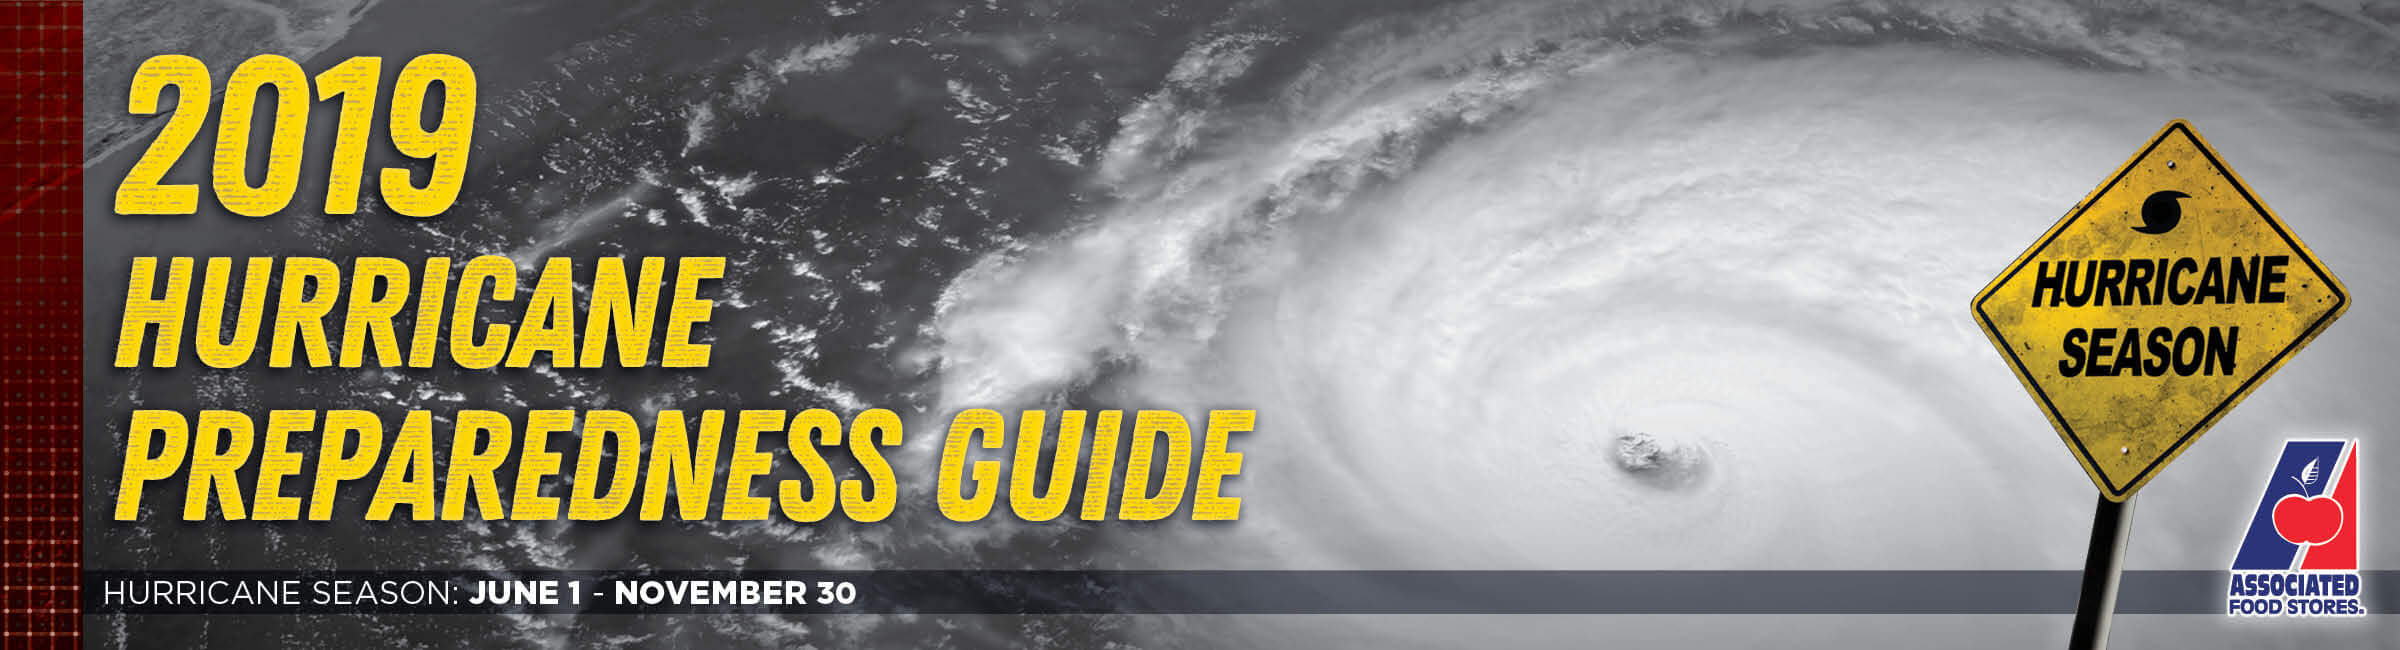 2019 Hurricane Preparedness Guide